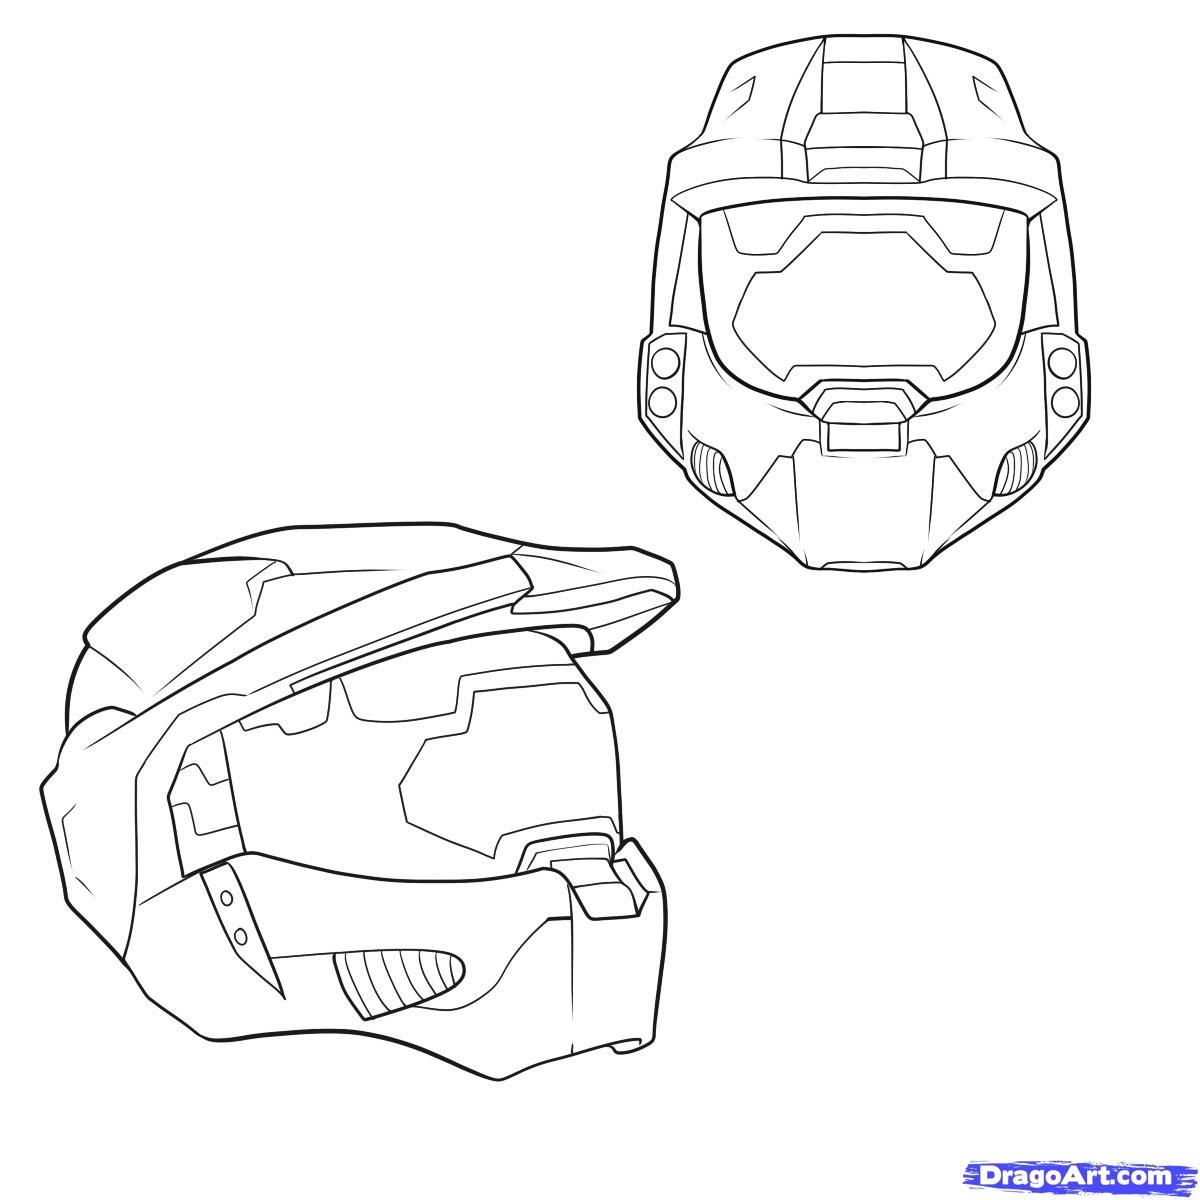 1200x1200 How To Draw A Halo Helmet, Step By Step, Video Game Characters